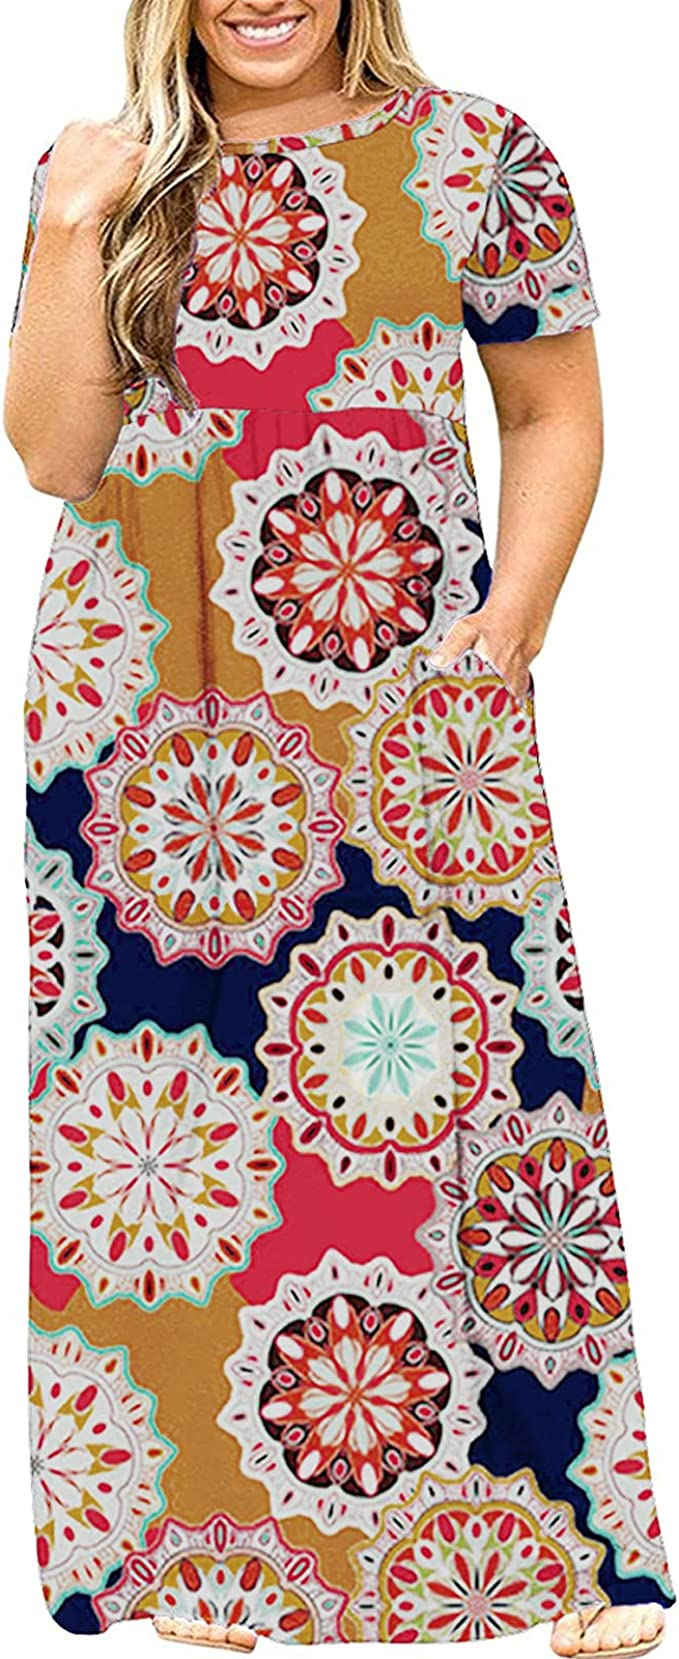 Womens Plus Size Maxi Dresses Floral Loose Short Sleeve T Shirt Casual Summer Long Dress with Pockets